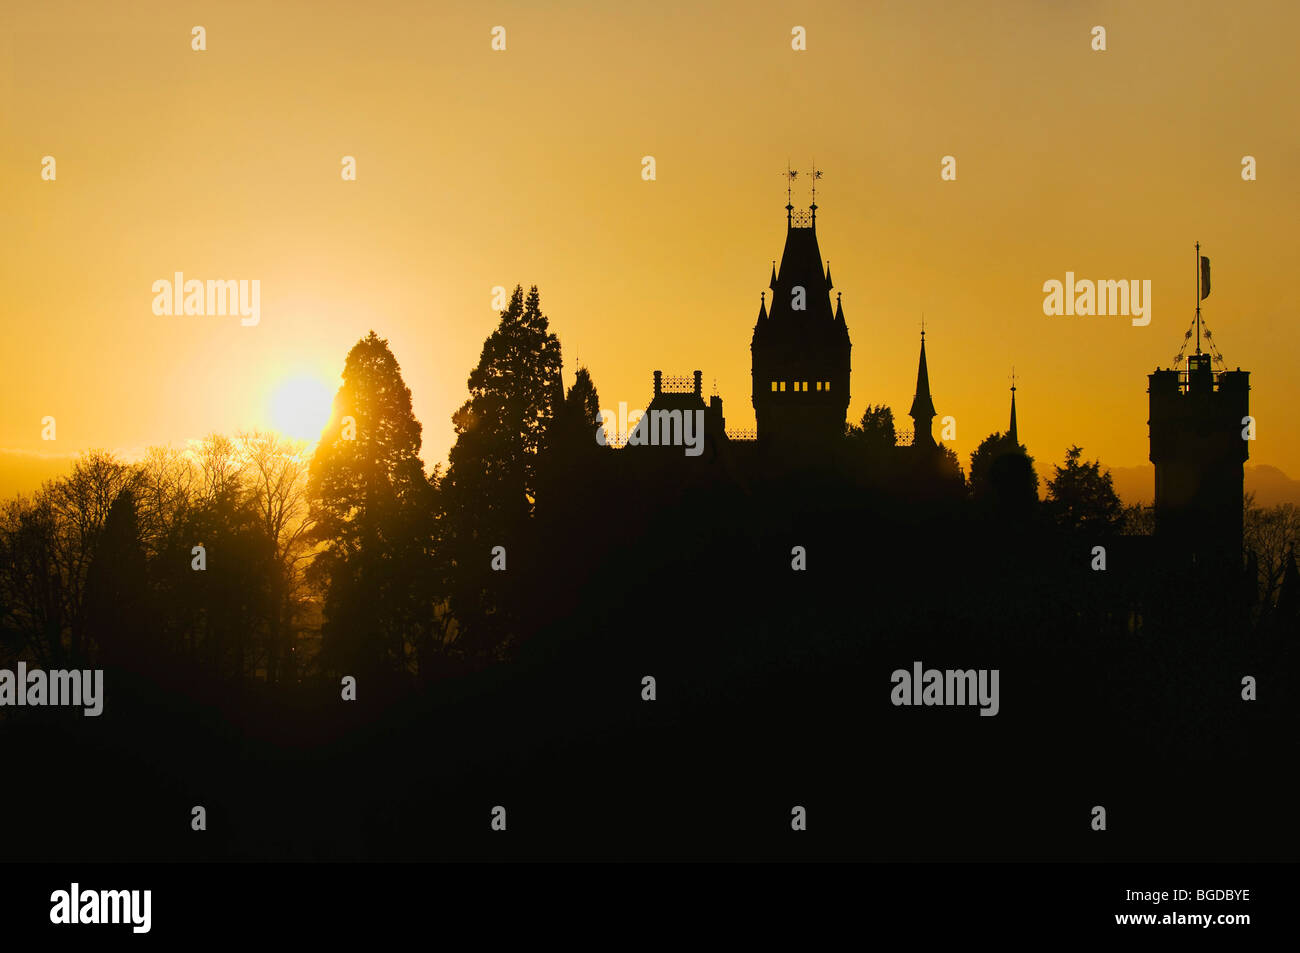 Schloss Drachenburg Castle with backlighting, silhouette, Koenigswinter, North Rhine-Westphalia, Germany, Europe - Stock Image